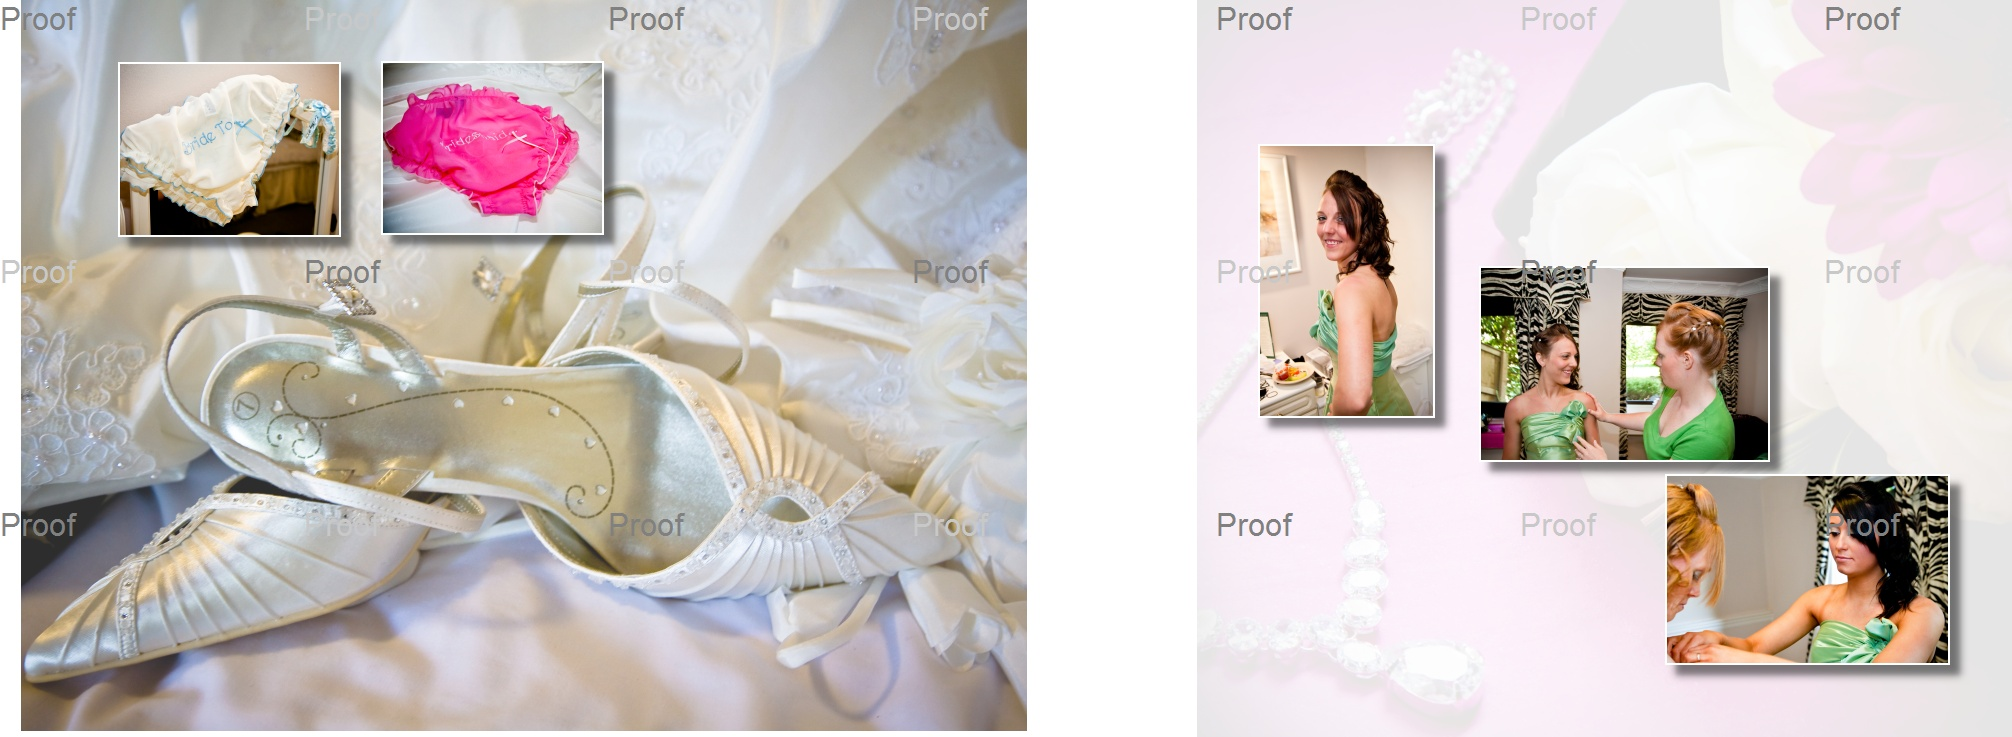 pages 4-5 of wedding storybook album with bridesmaids getting ready